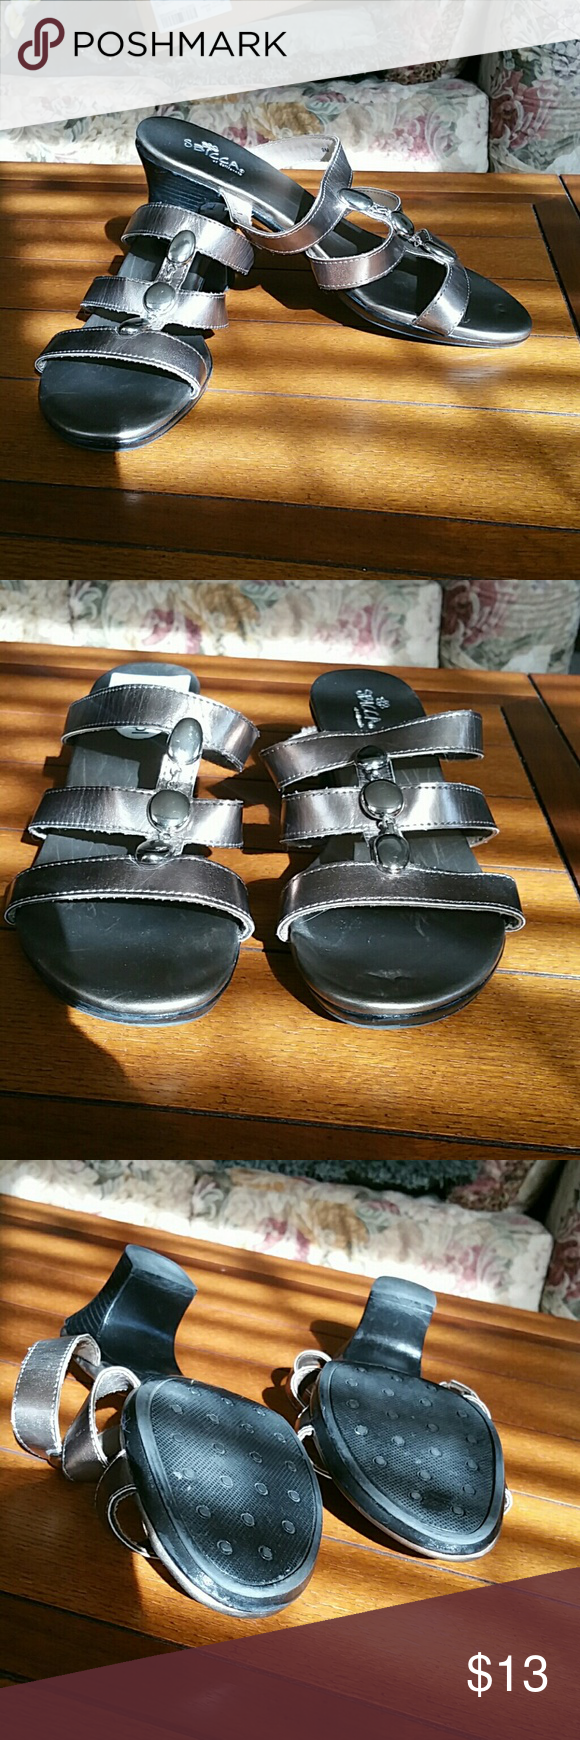 NWT SBICCA GOLD SLIP ON SANDALS SZ 9B Goldtone SBICCA slides. Never worn. Made of man made materials. Flashy accents on top of shoes. Sbicca Shoes Sandals